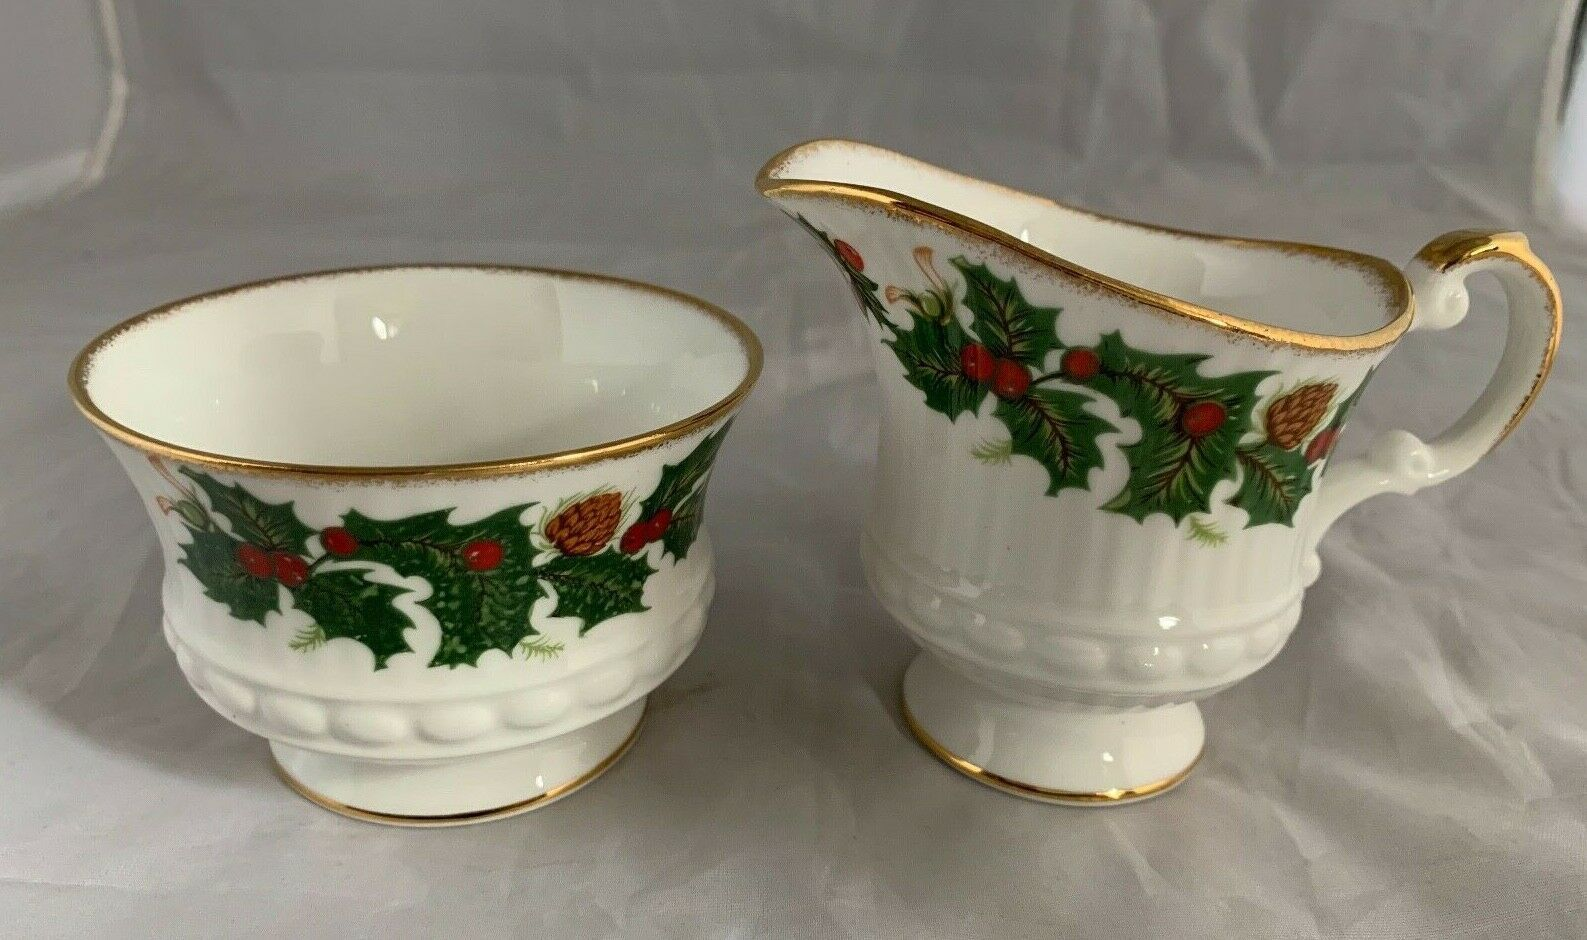 Primary image for Queens Yuletide Holly Creamer and Sugar Bowl Rosina Fine Bone China England